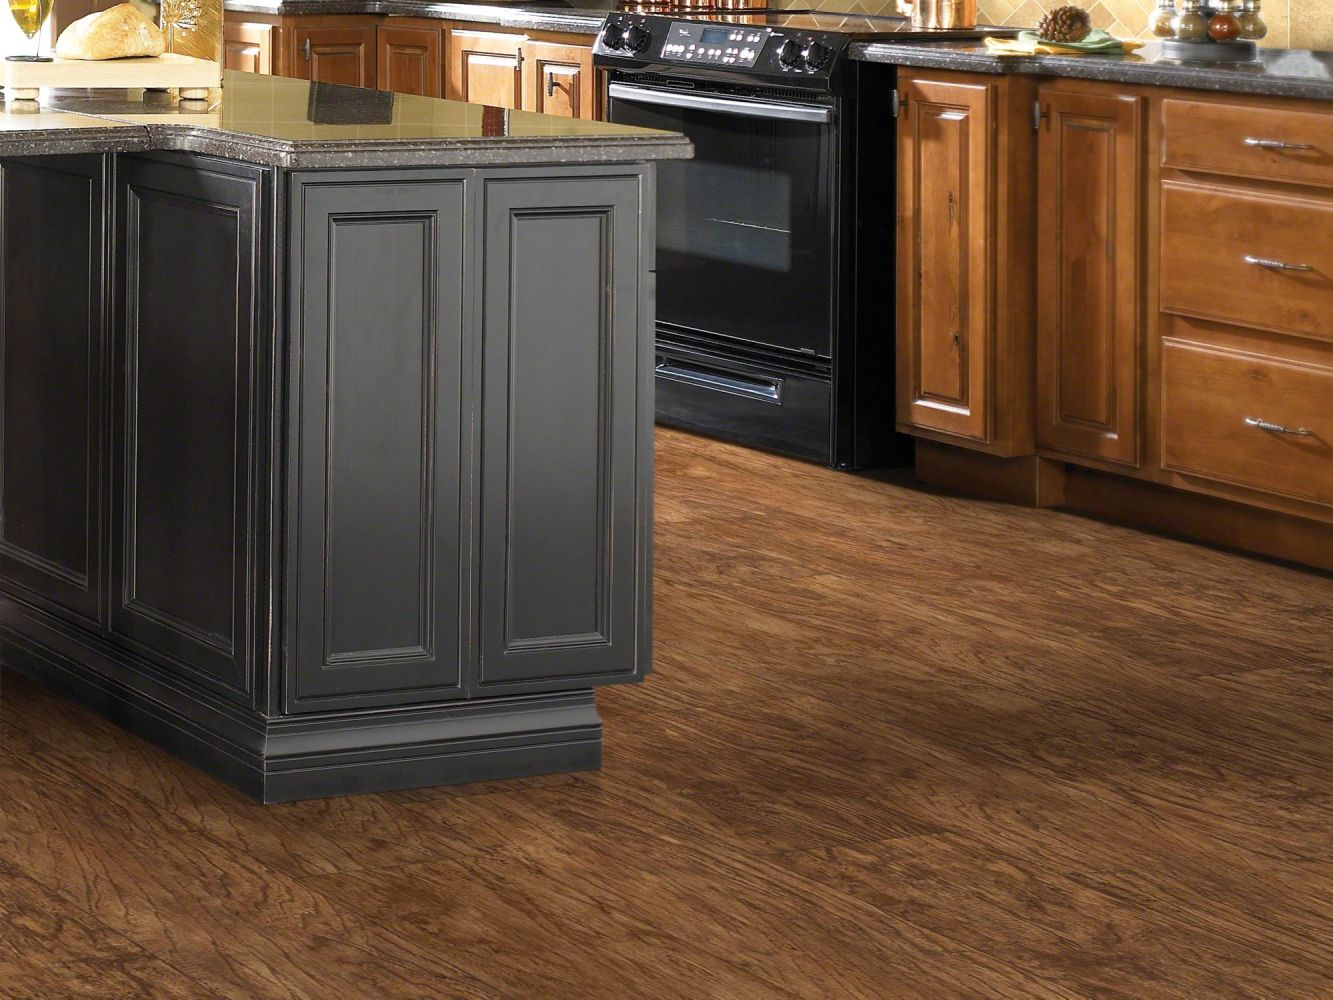 Shaw Floors Resilient Residential Sumter Plus Spice Box 00355_0225V